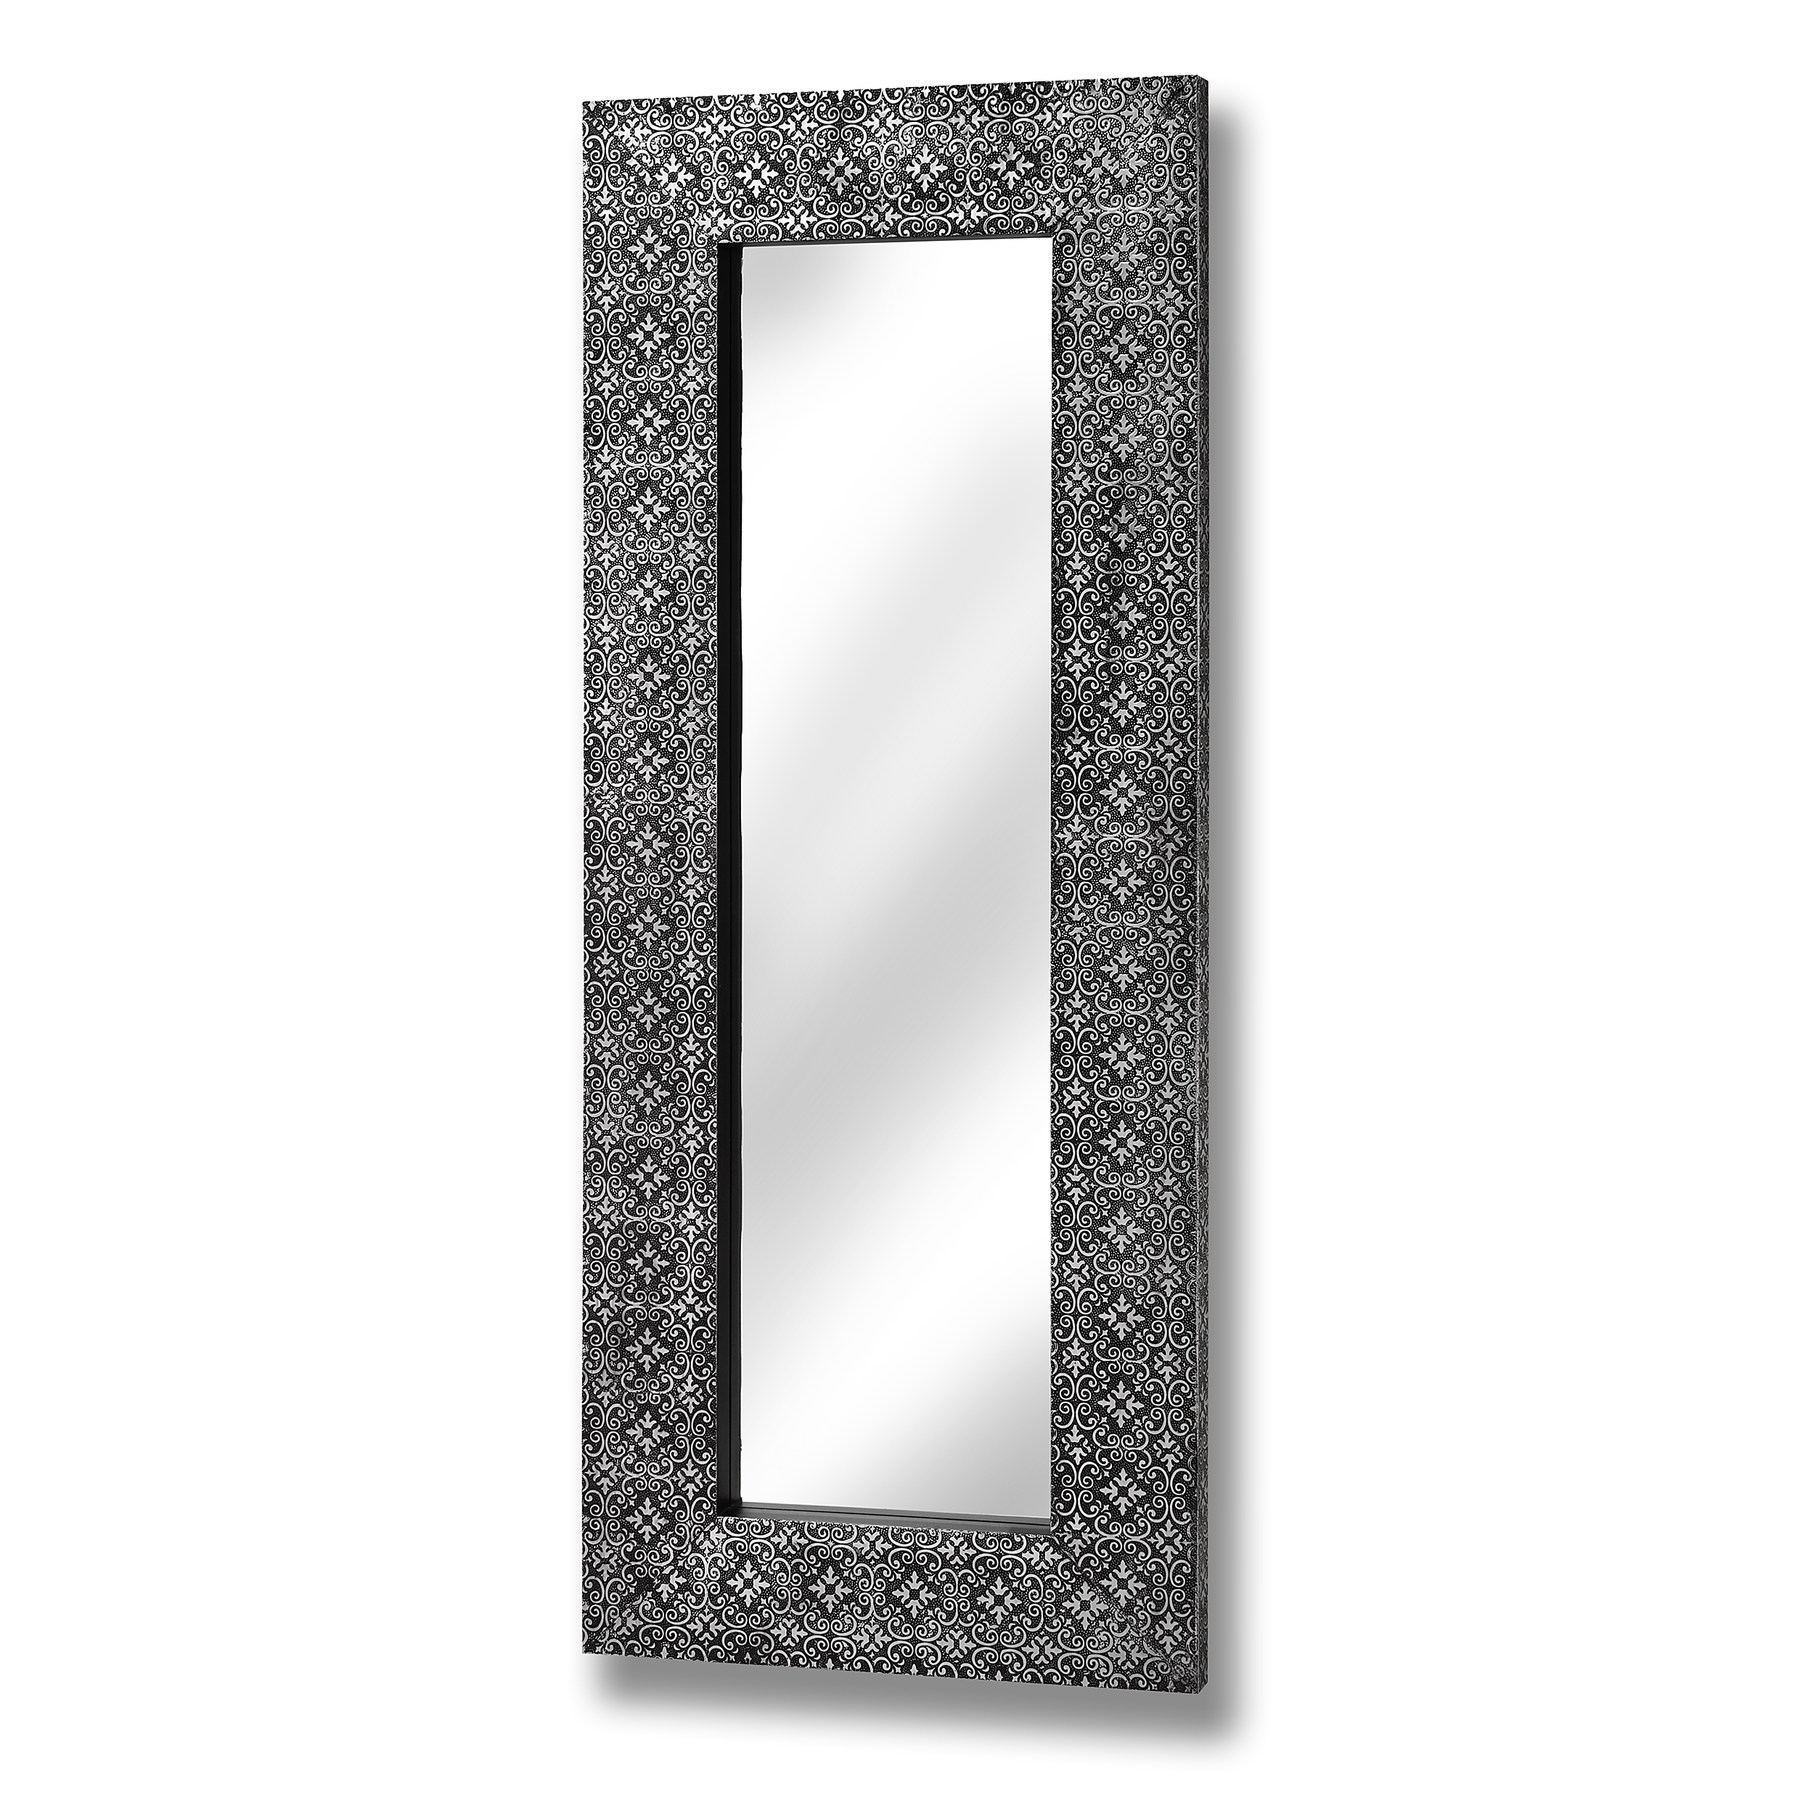 Marrakech Range - Tall Wall Mirror